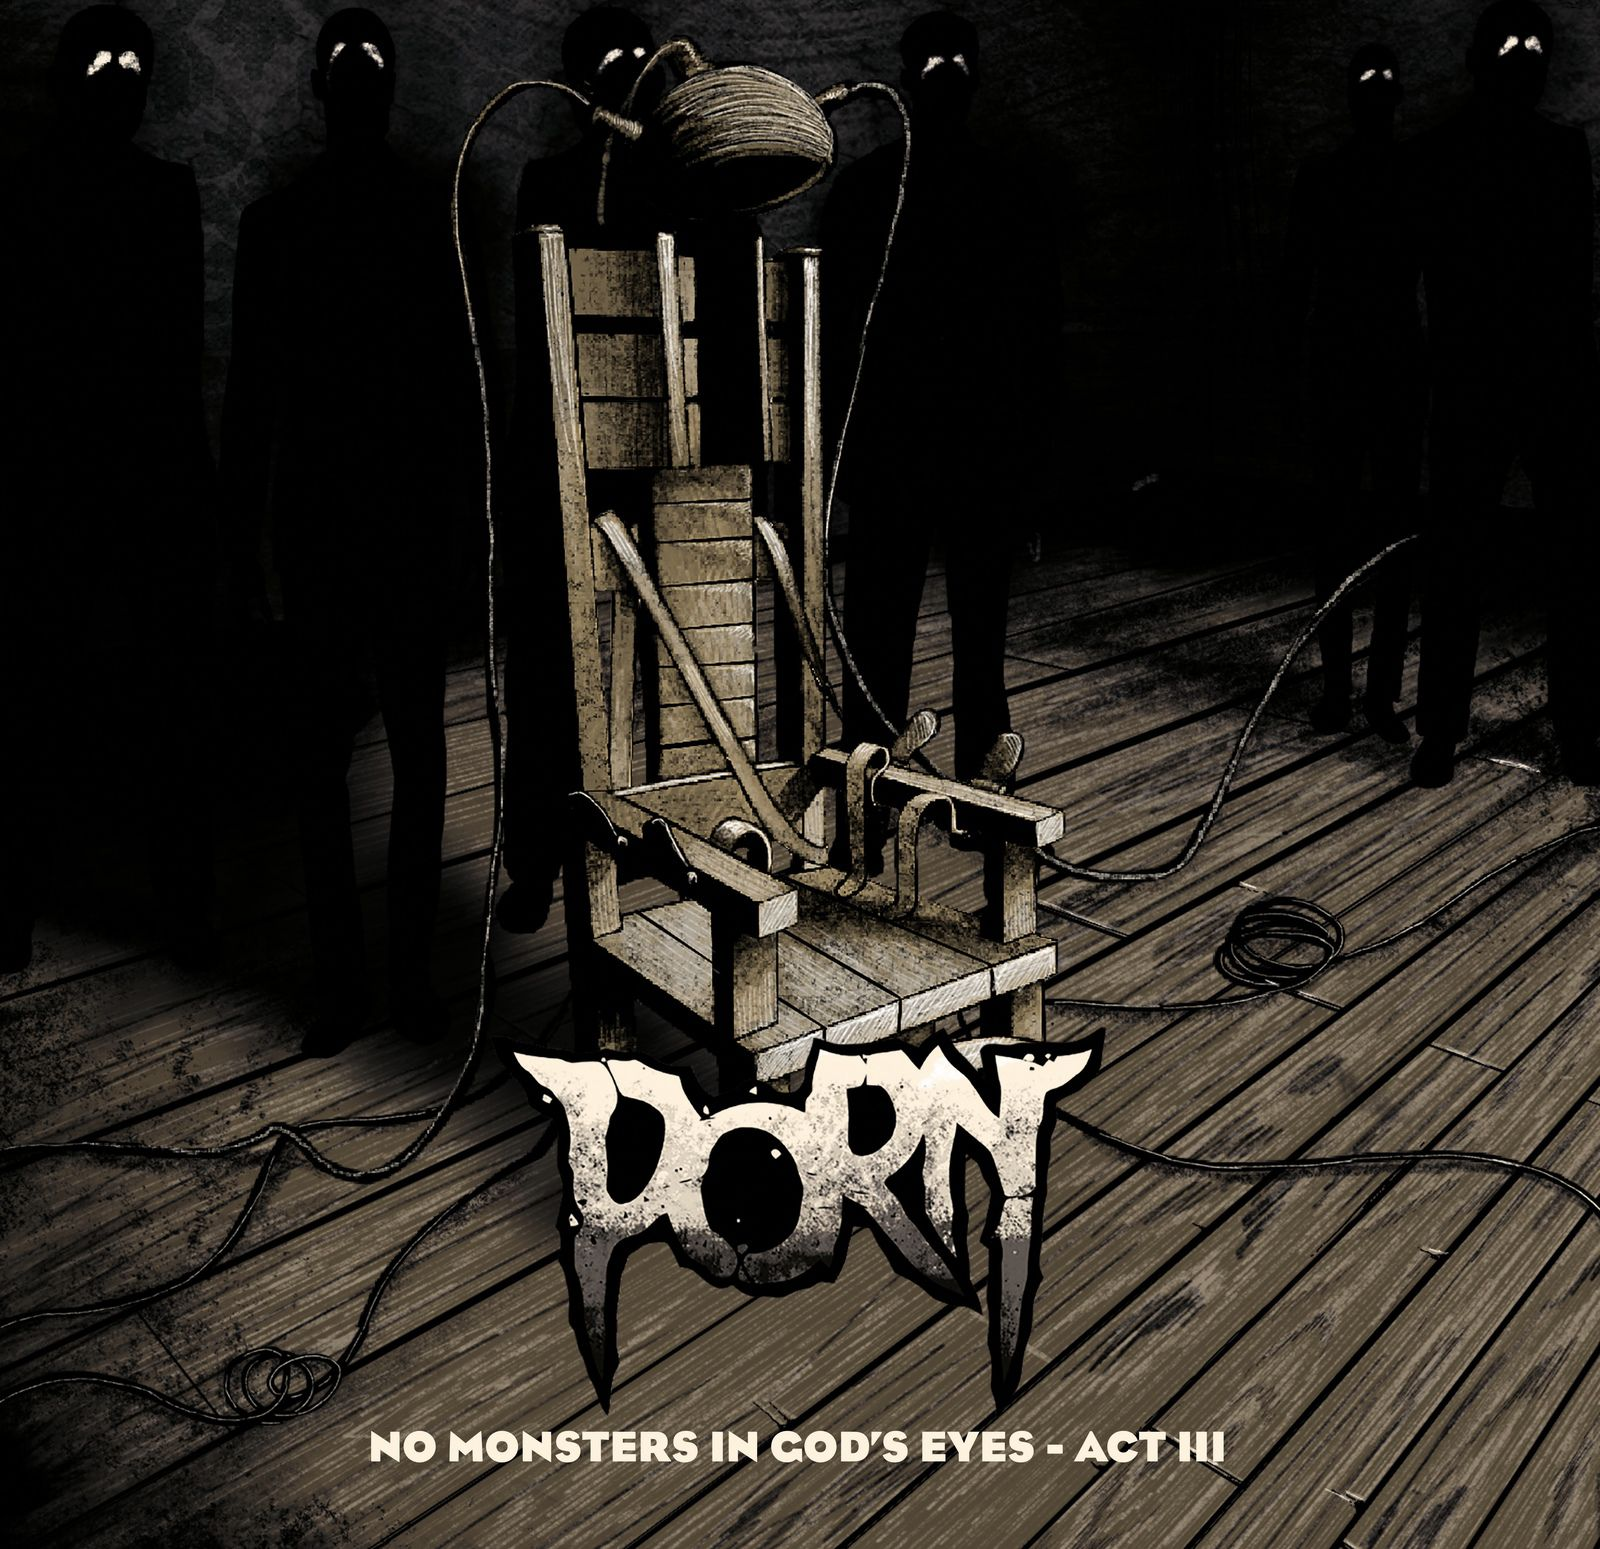 """EXCLU - Interview avec PORN pour l'album """"No Monsters in God's Eyes. Act III"""""""